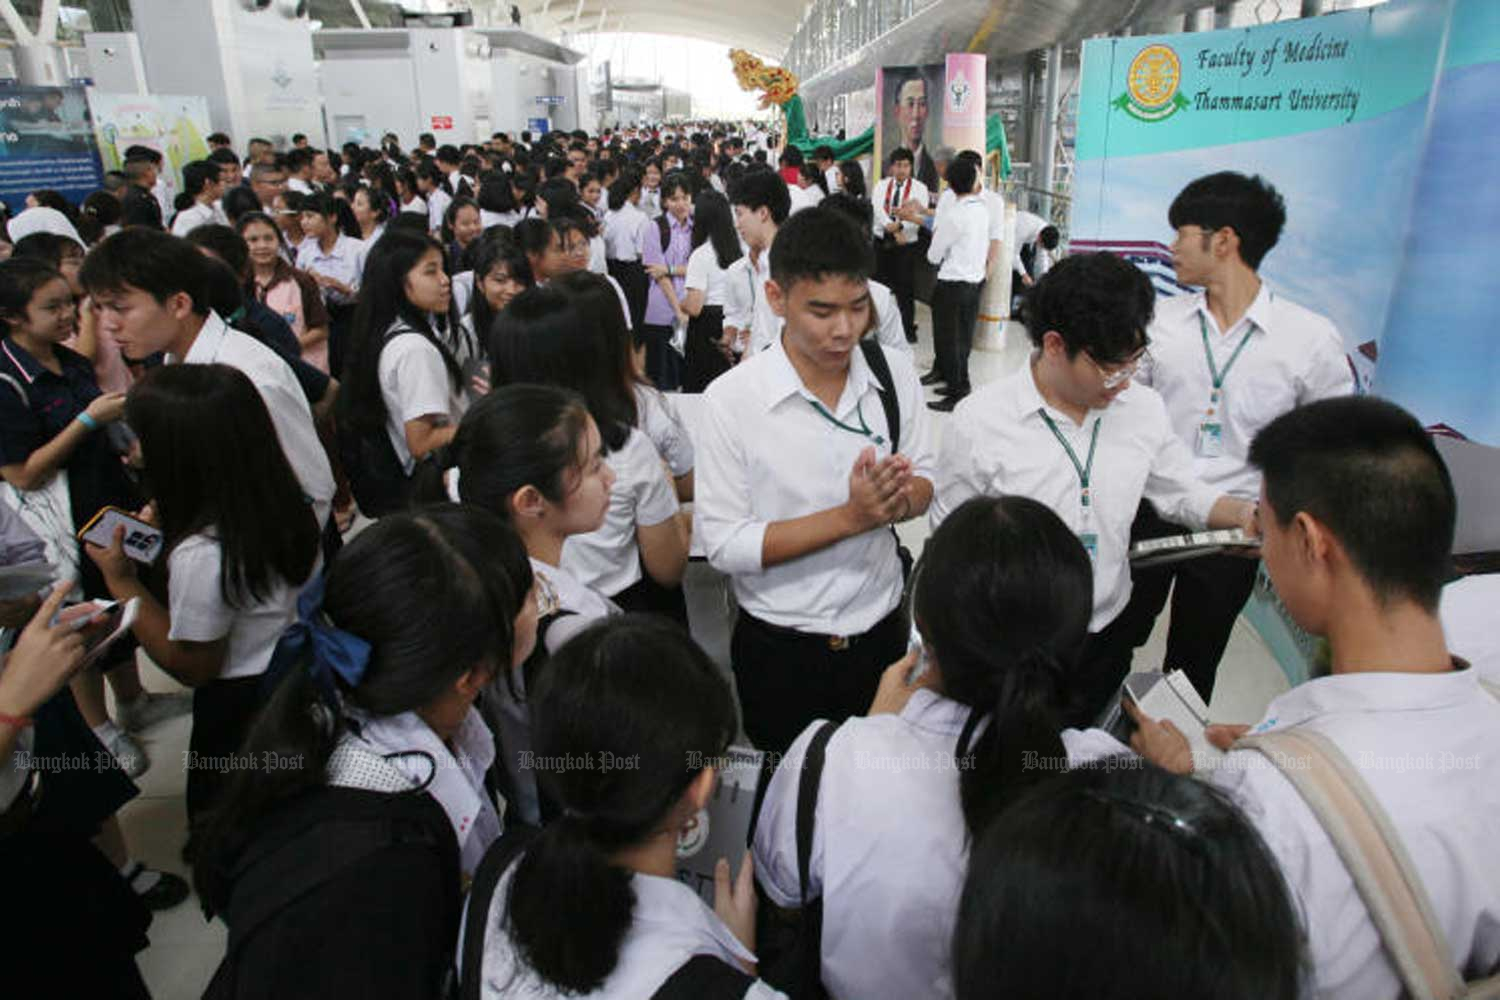 Students wanting to study medical sciences, dentistry and pharmacology participate in an open house event hosted by the Society of Medical Students of Thailand in Bangkok last year. (Bangkok Post file photo)